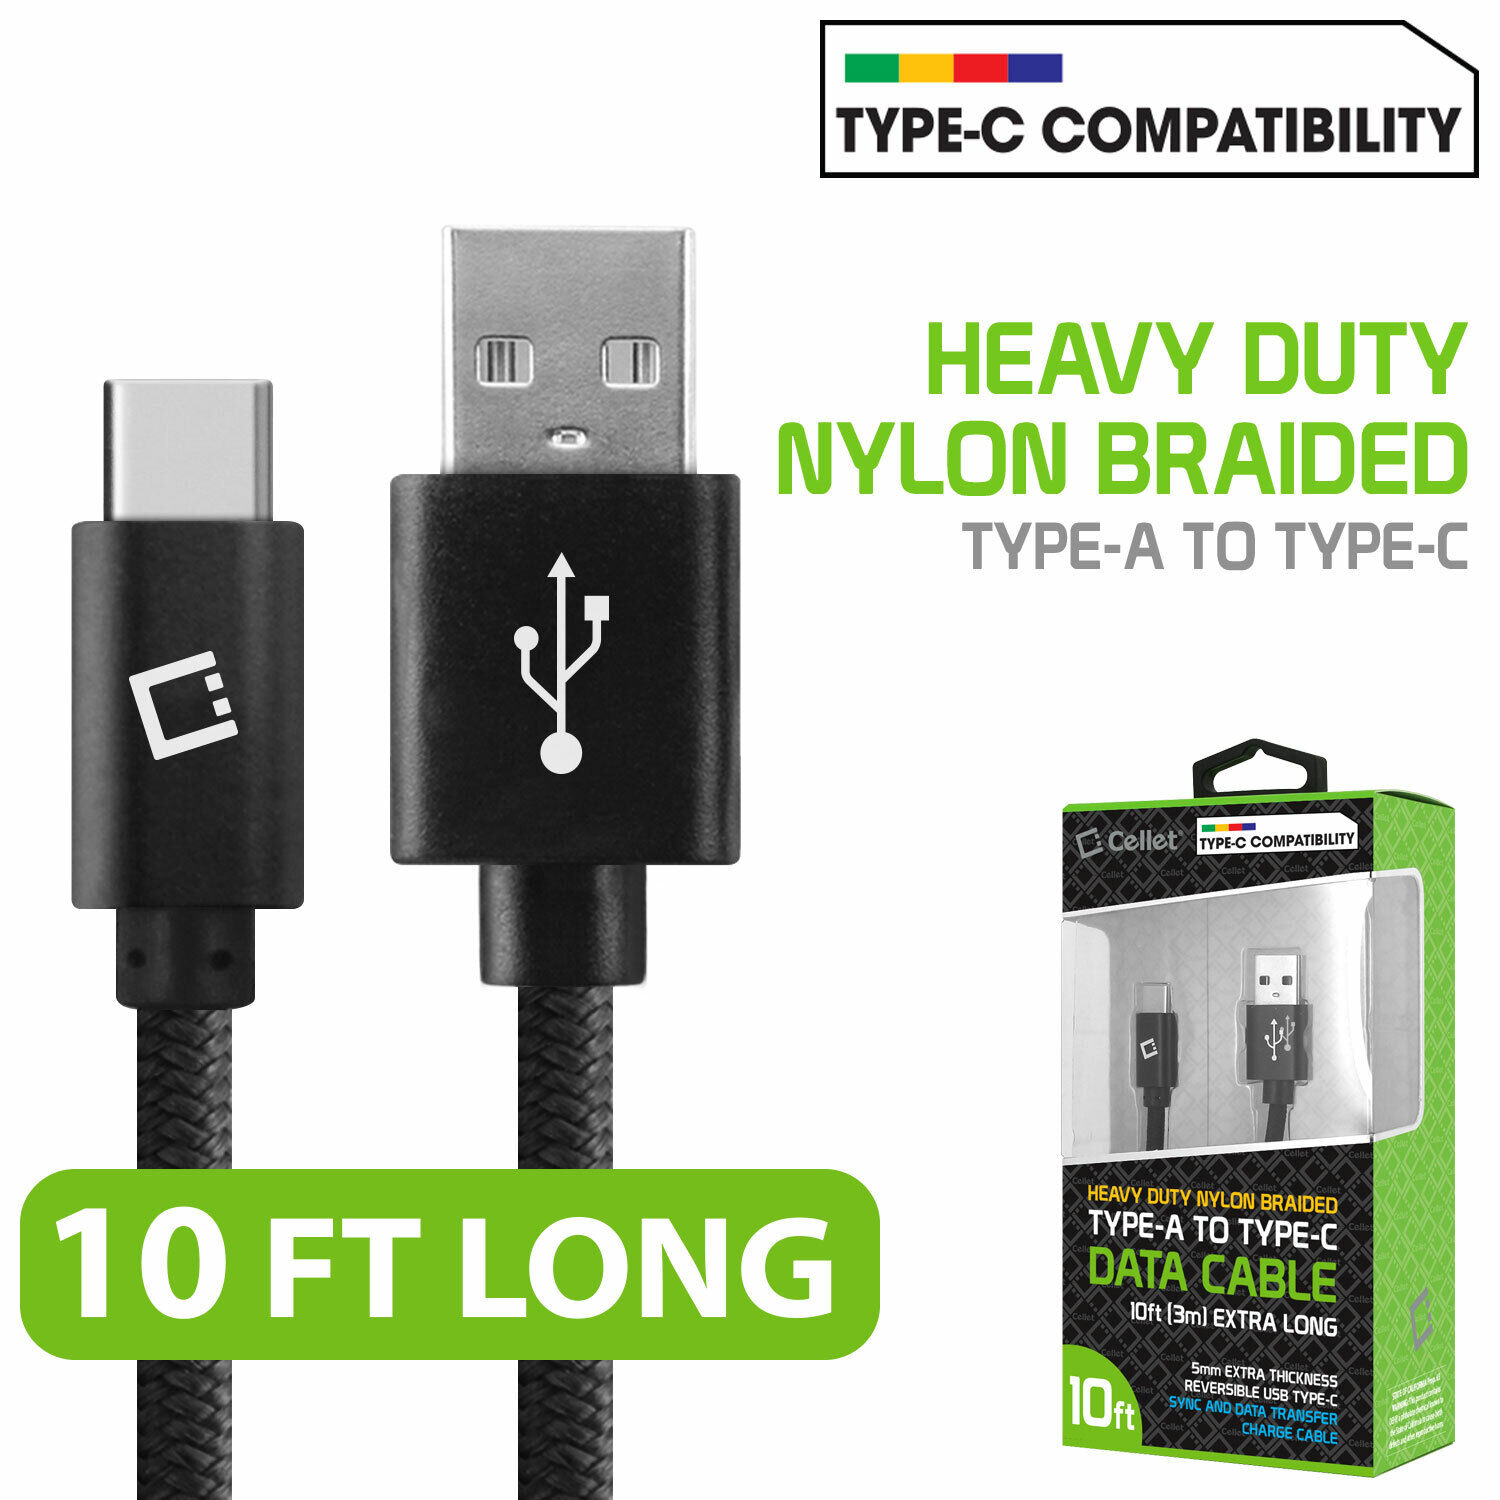 Cellet 10ft Heavy Duty Nylon Braided TypeC Cable for MacBook Pro Chromebook